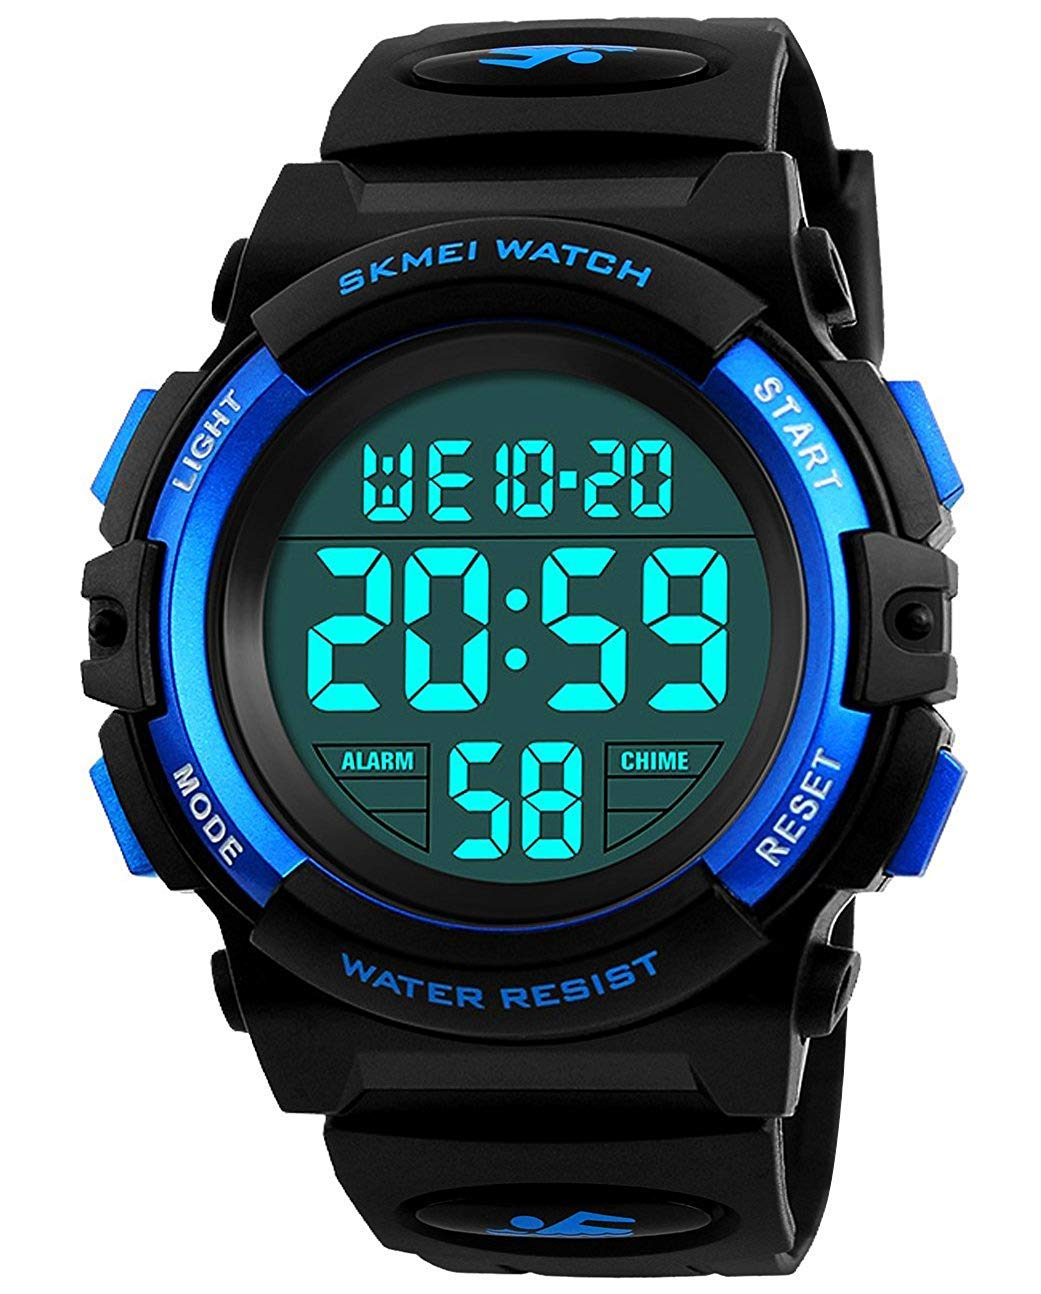 Kids Digital Sports Watch for Boys Girls, Boy Waterproof Casual Electronic Analog Quartz 7 Colorful Led Watches with Alarm Stopwatch Silicone Band Luminous Wristatches by cofuo